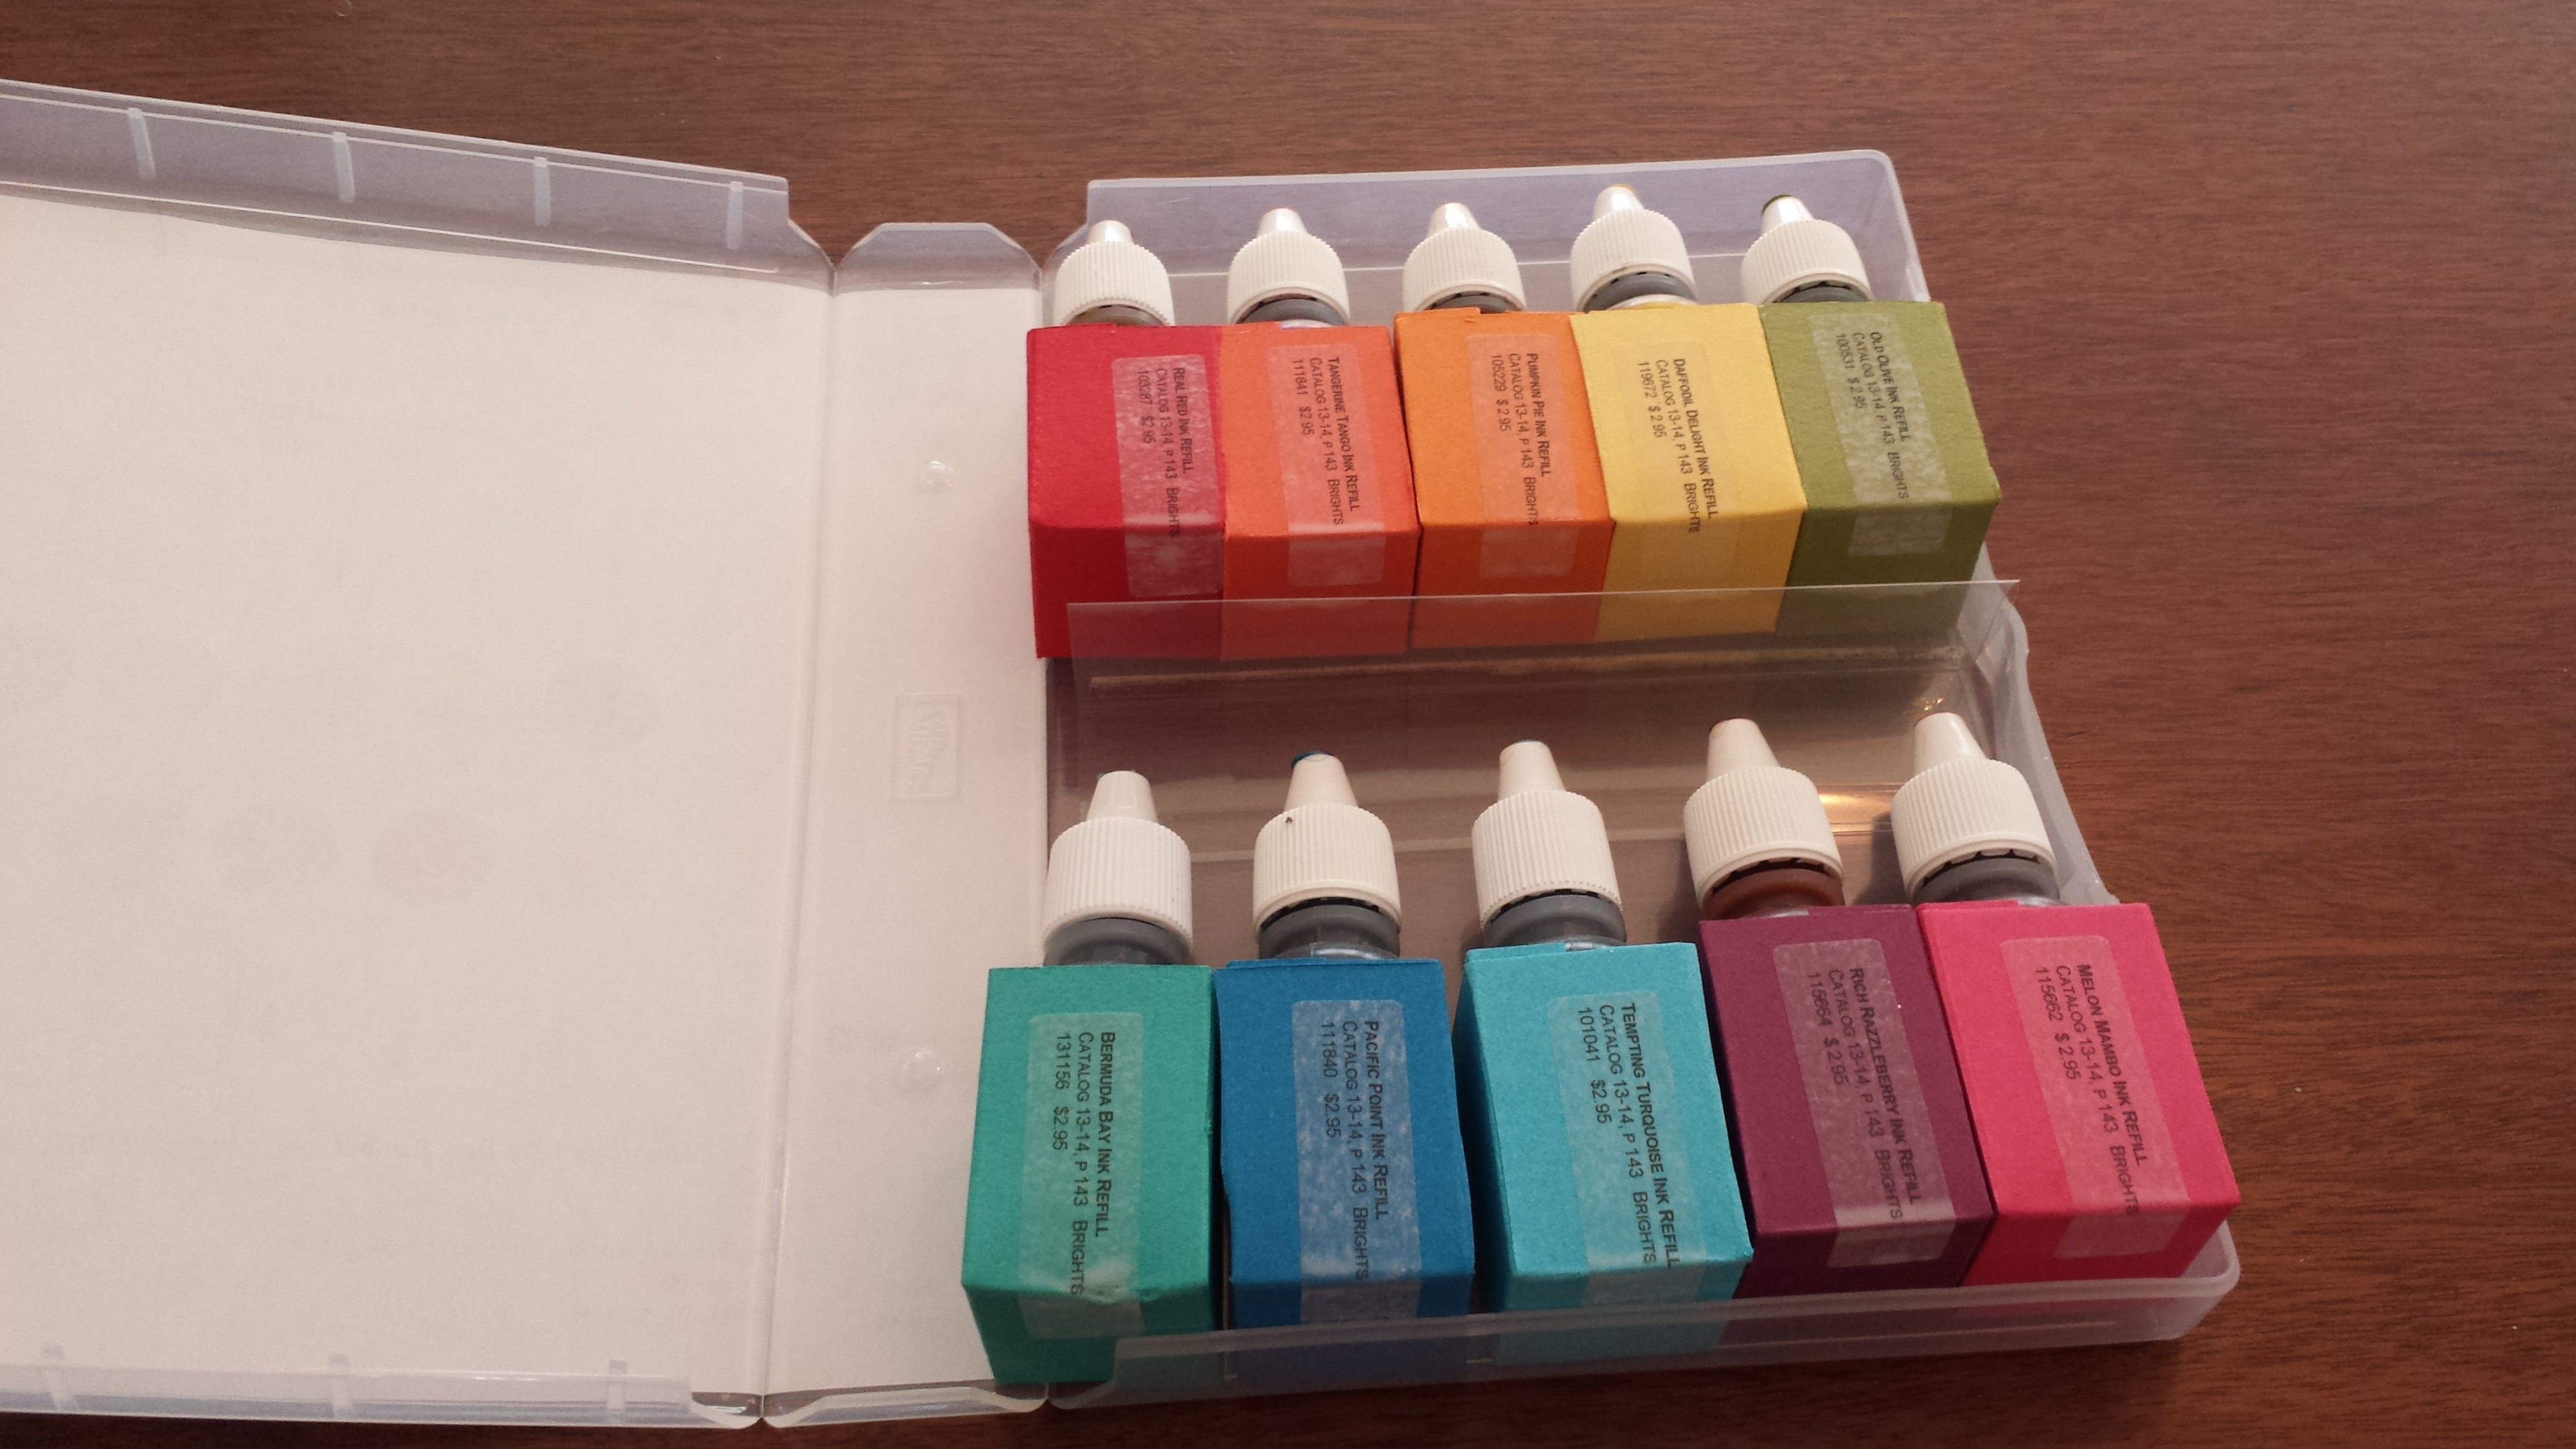 http://bevadams.com/wp-content/uploads/2014/09/Clear-Case-Ink-Refill-open.jpg